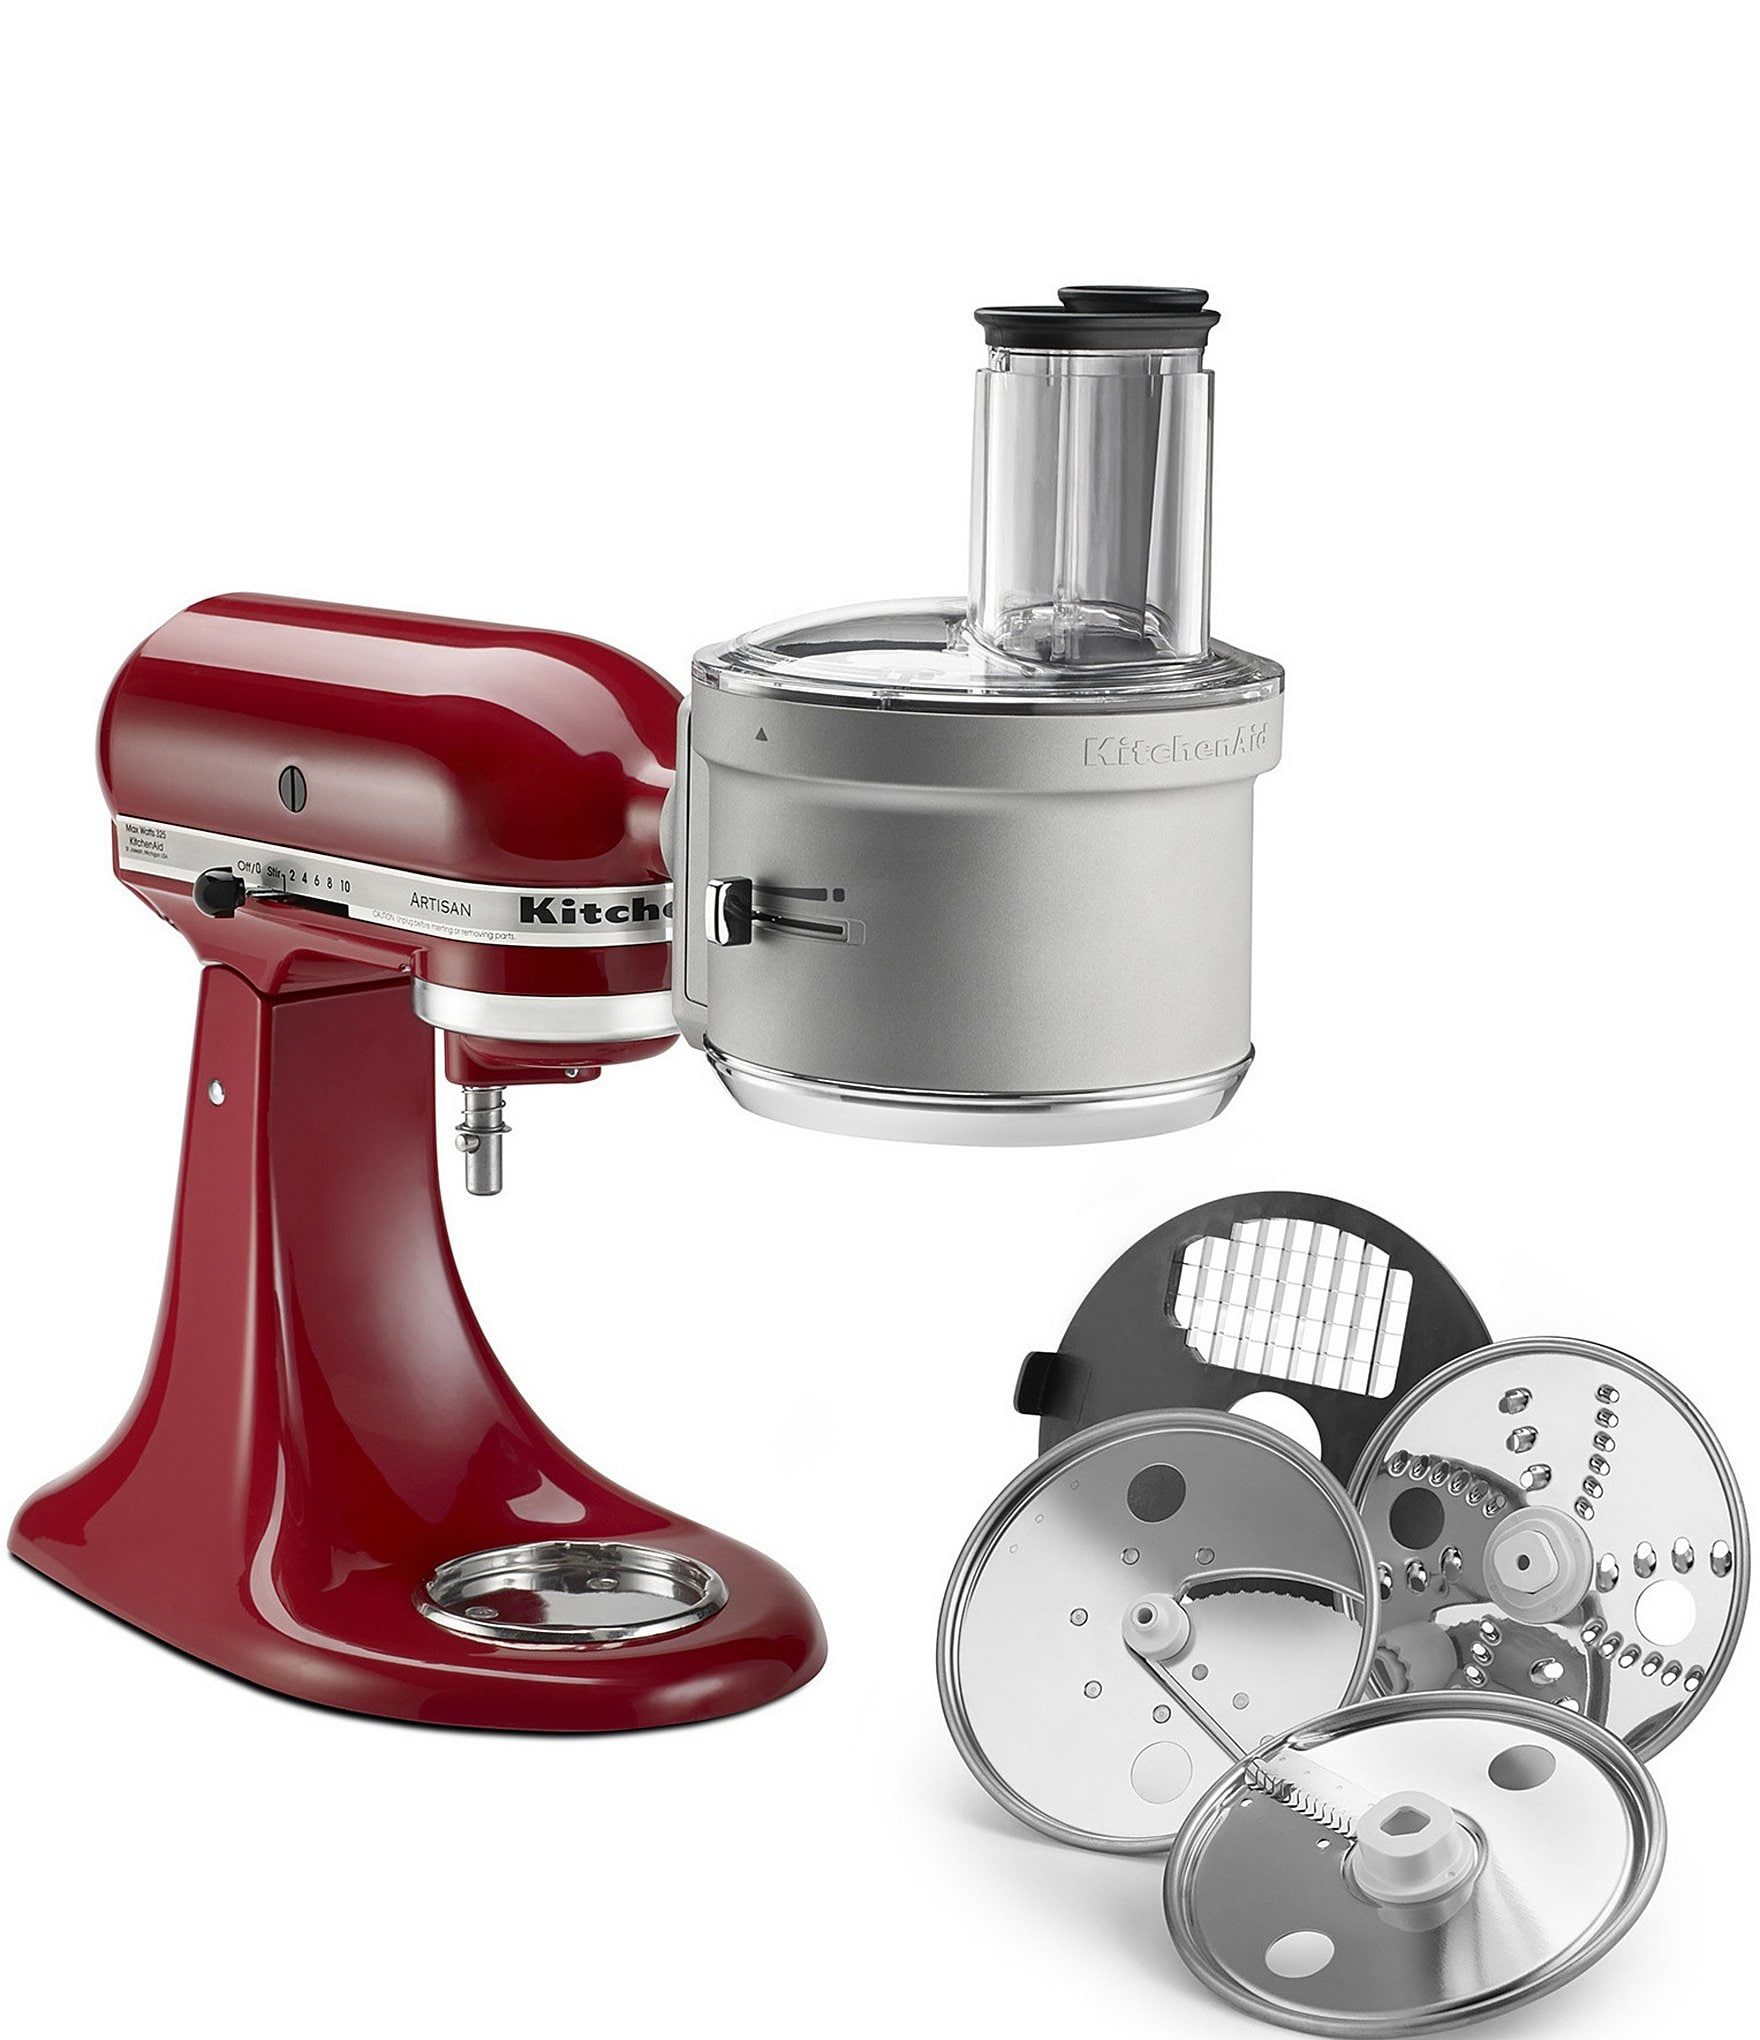 KitchenAid Dicing & Food Processor Stand Mixer Attachment Kit | Dillard\'s